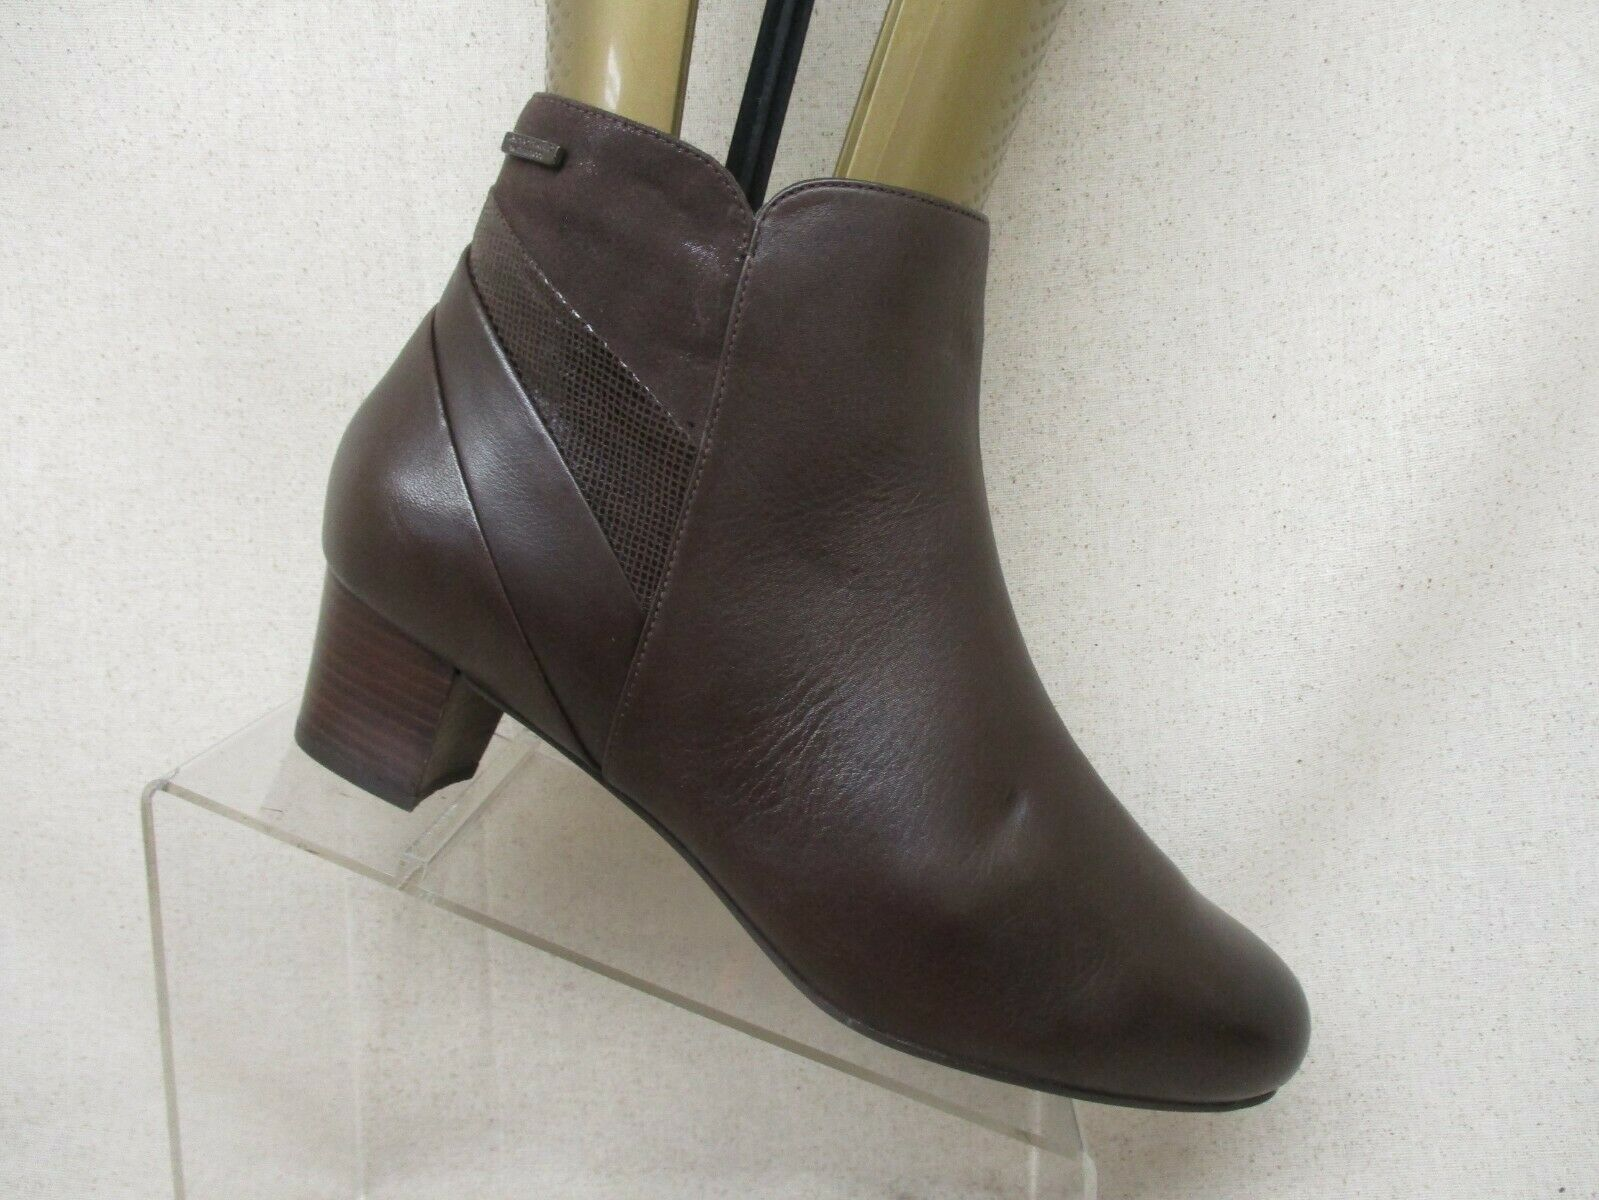 Rockport Brown Leather Side Zip Comfort Ankle Fashion Boots Bootie Size 11 M